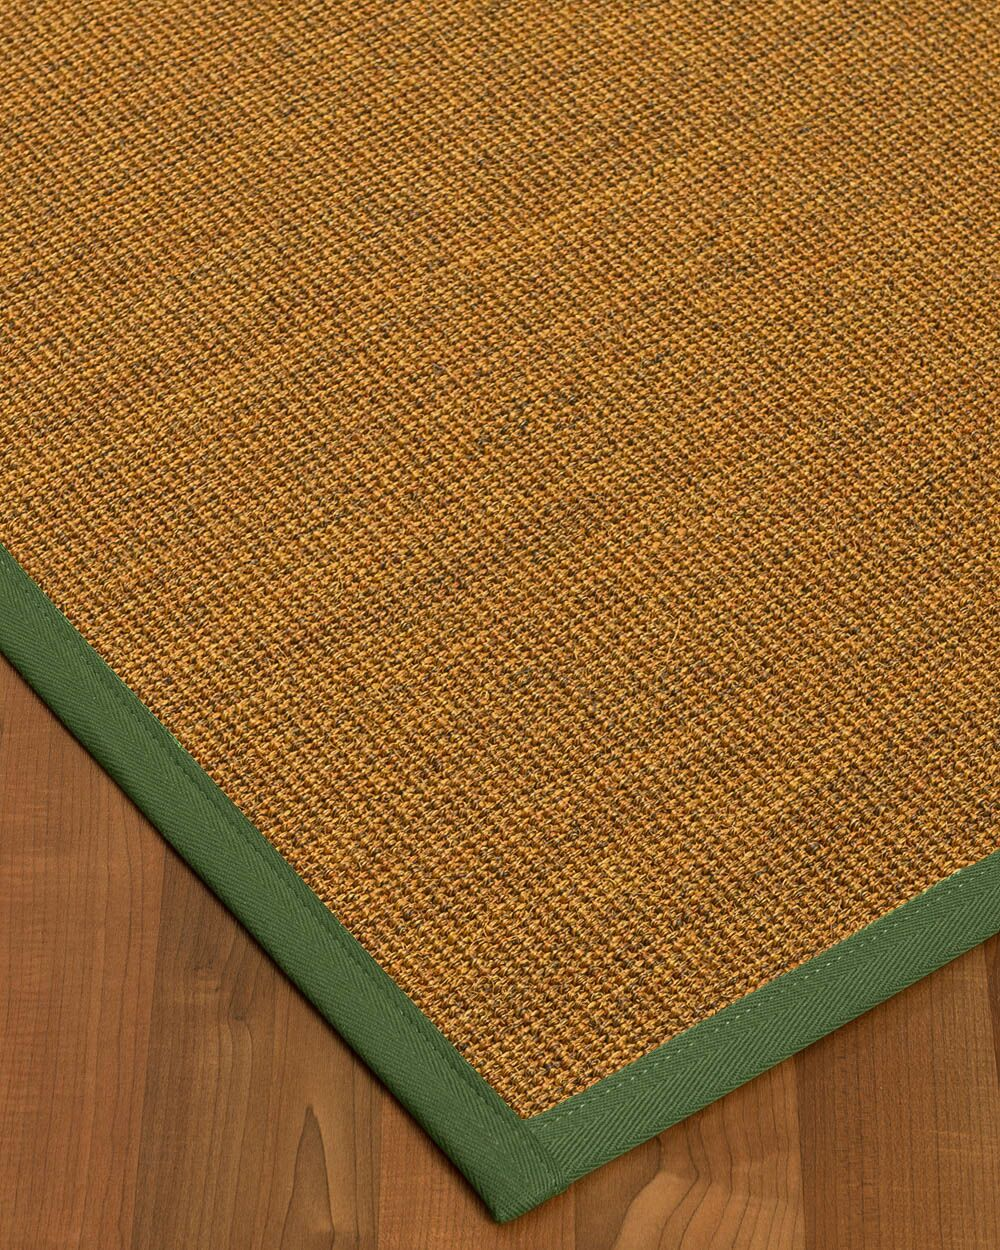 Halsted Hand-Woven Beige Area Rug Rug Size: Rectangle 8' x 10'